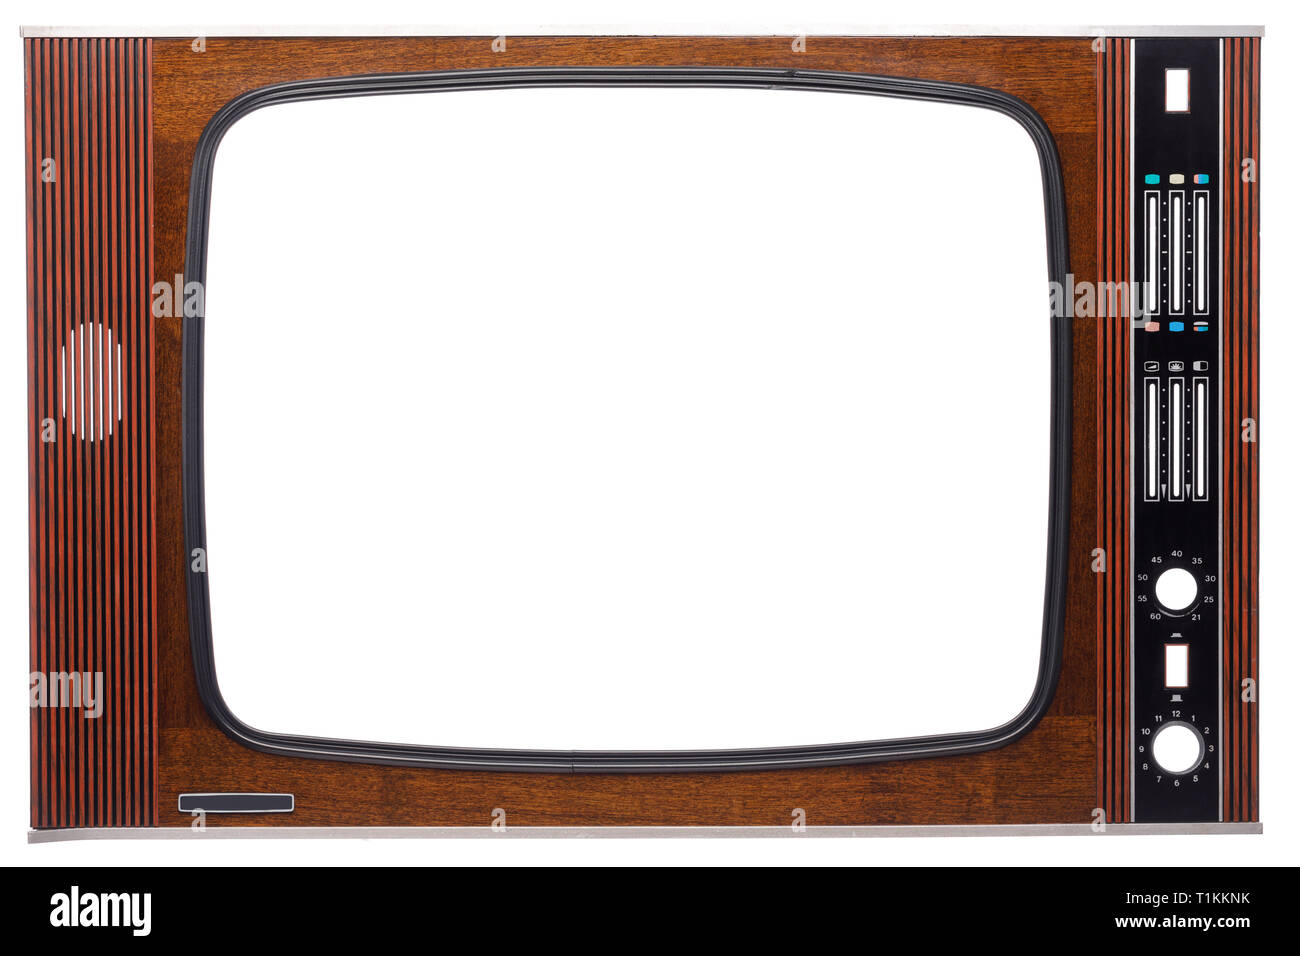 Front panel of vintage veneer decorated CRT television set made in USSR with cut out screen and controls isolated on white background - Stock Image